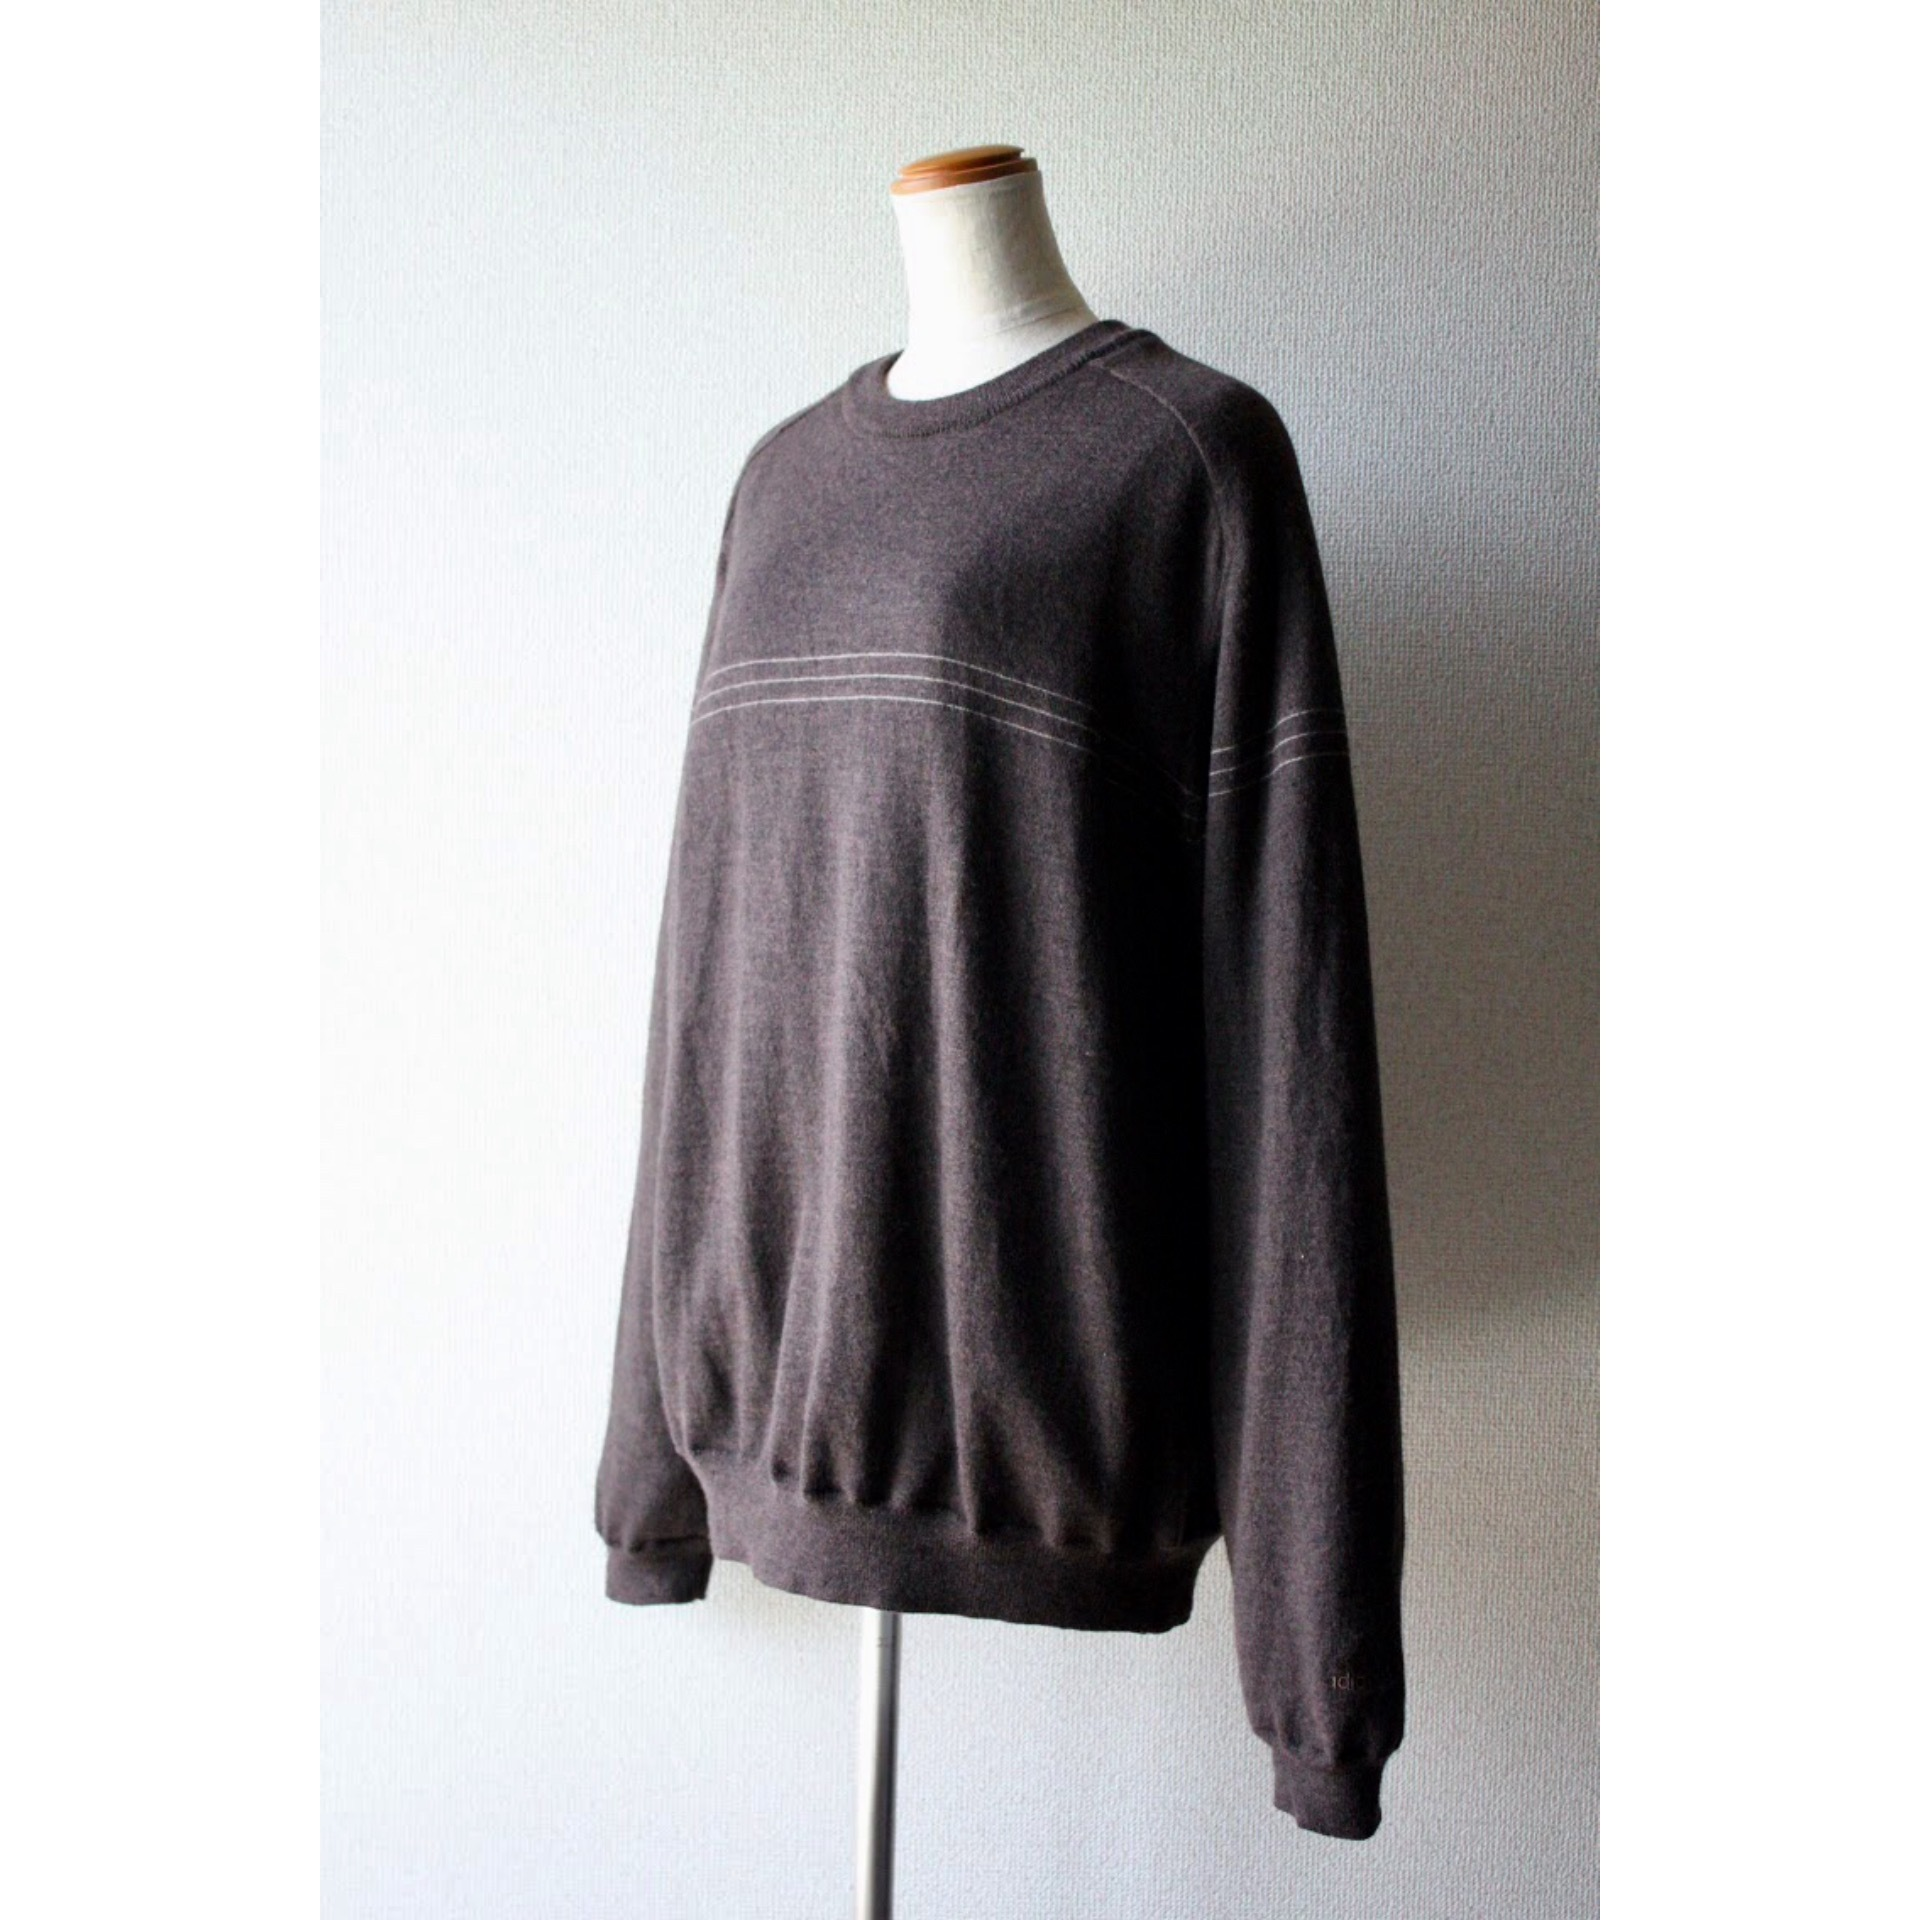 Three line sweater by adidas